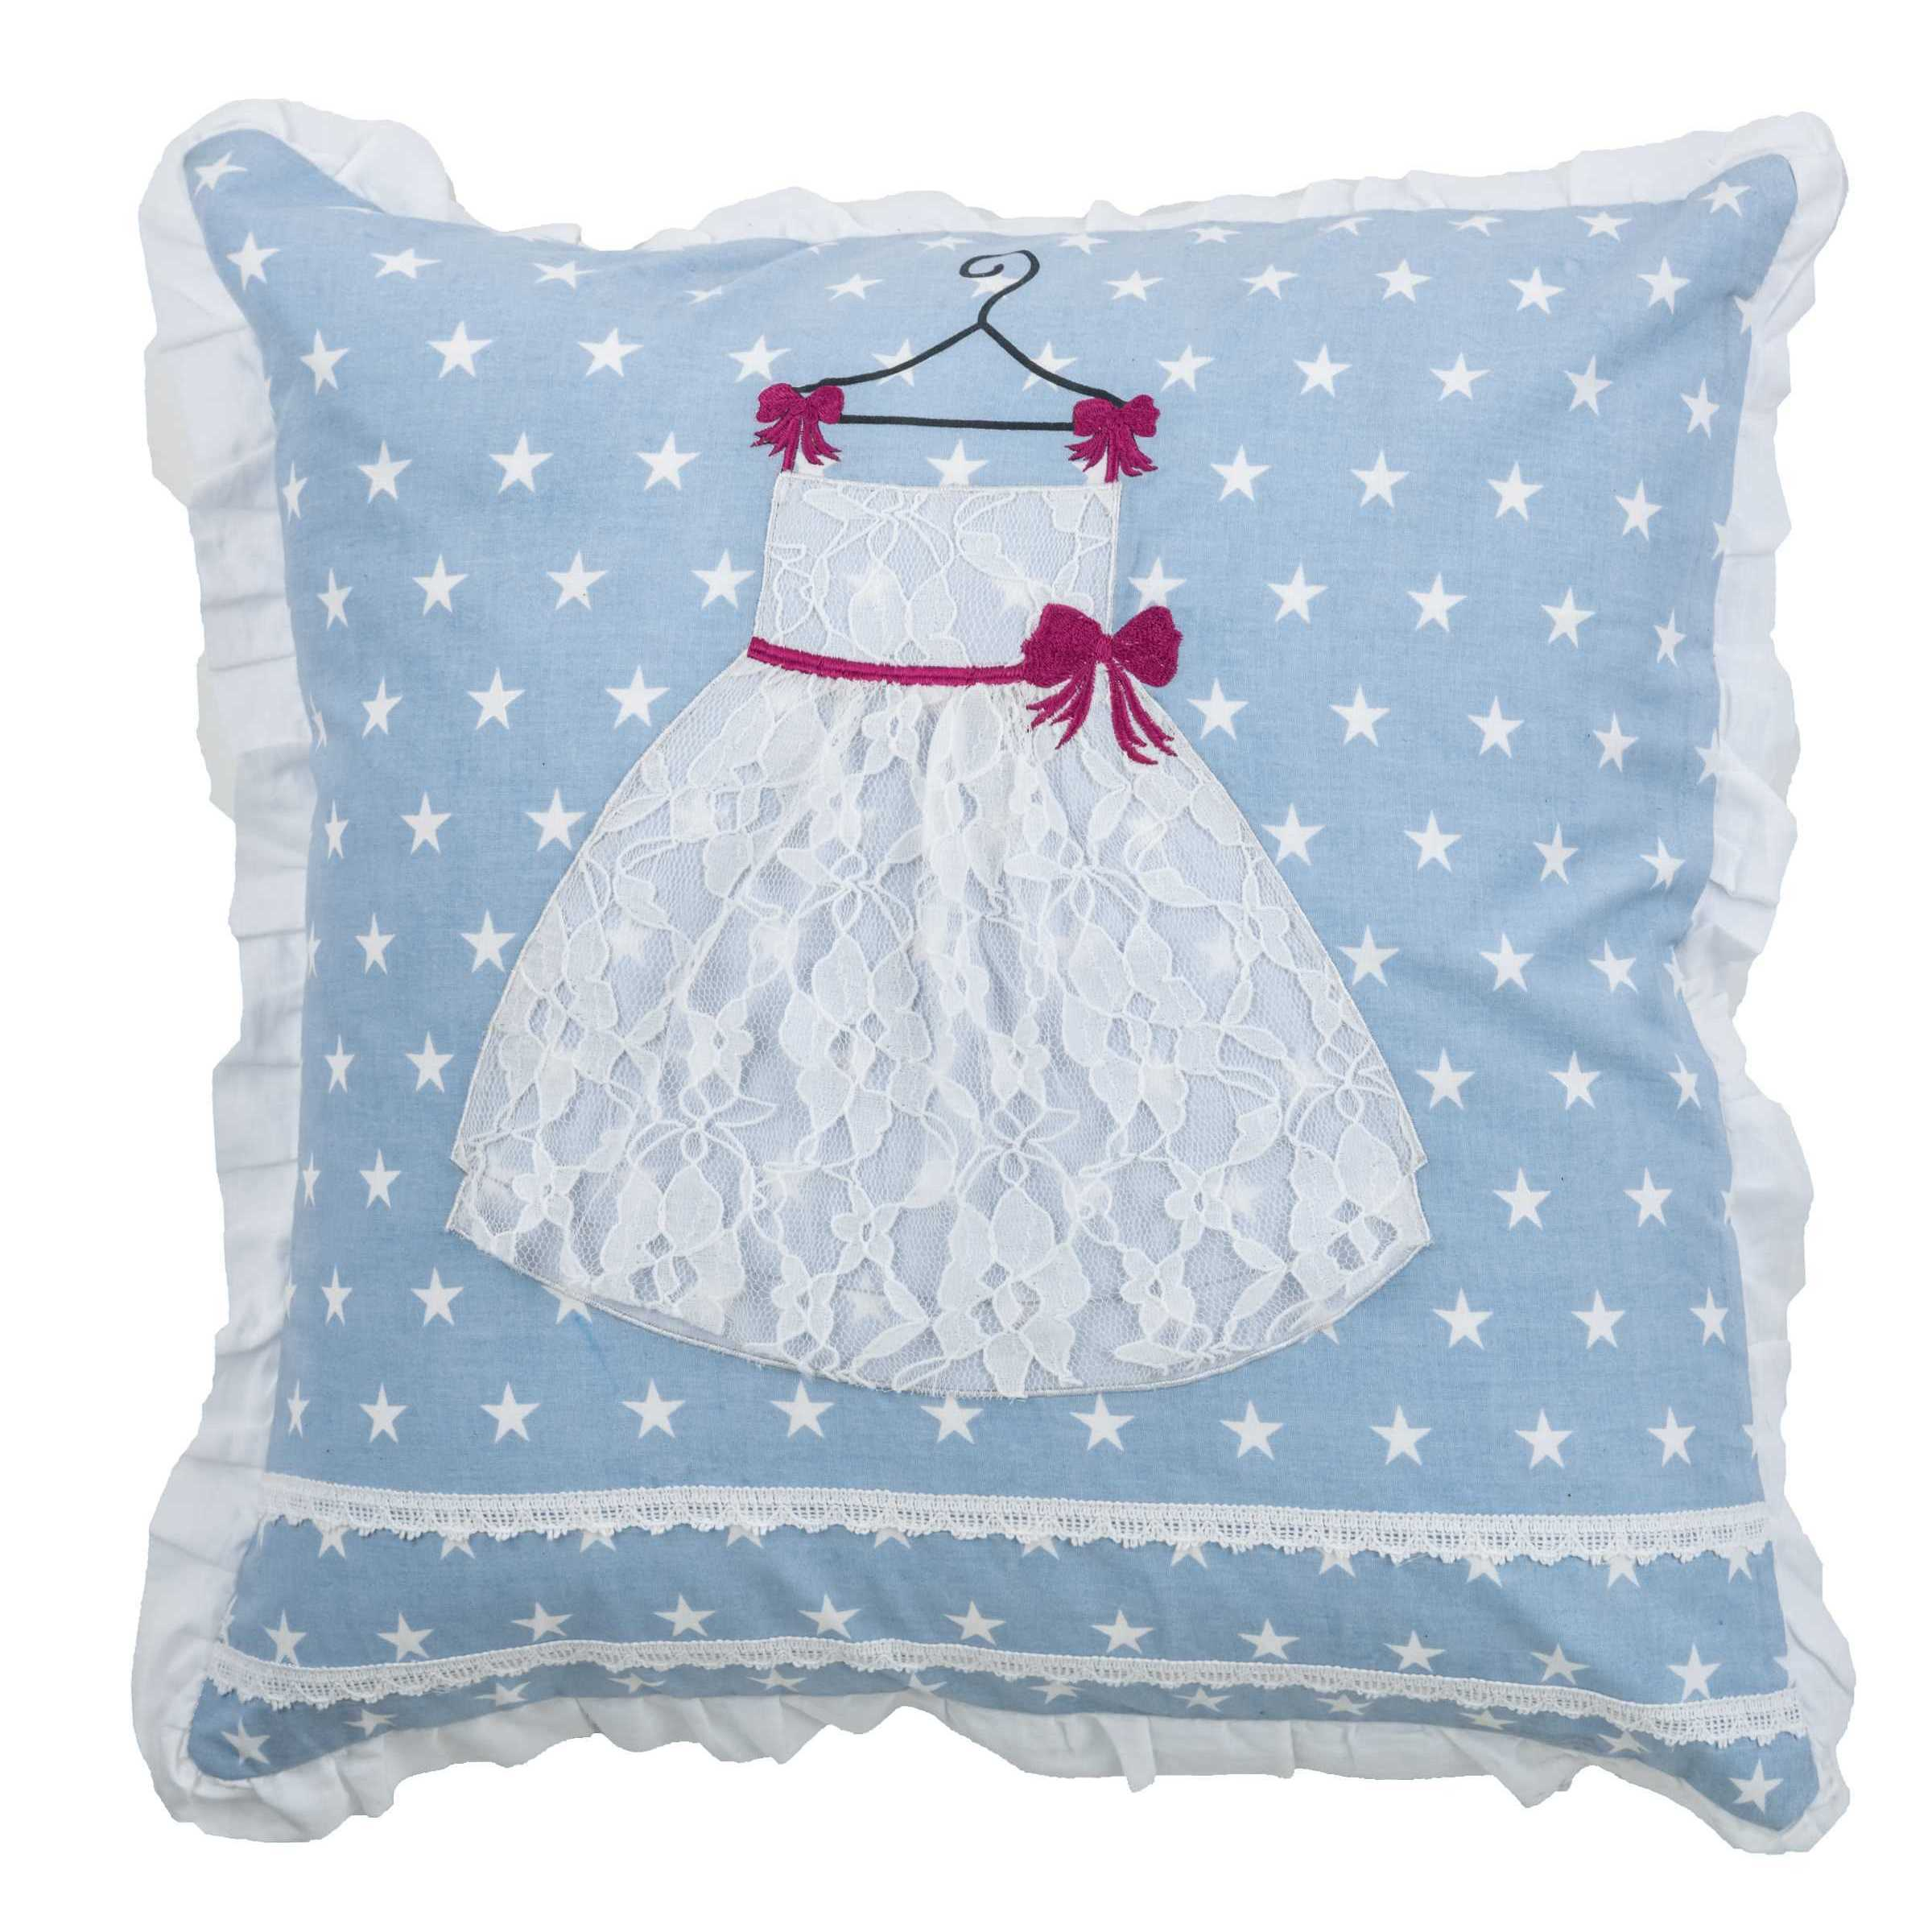 Rizzy Rugs Blue and White Cotton Princess Dress Throw Pil...